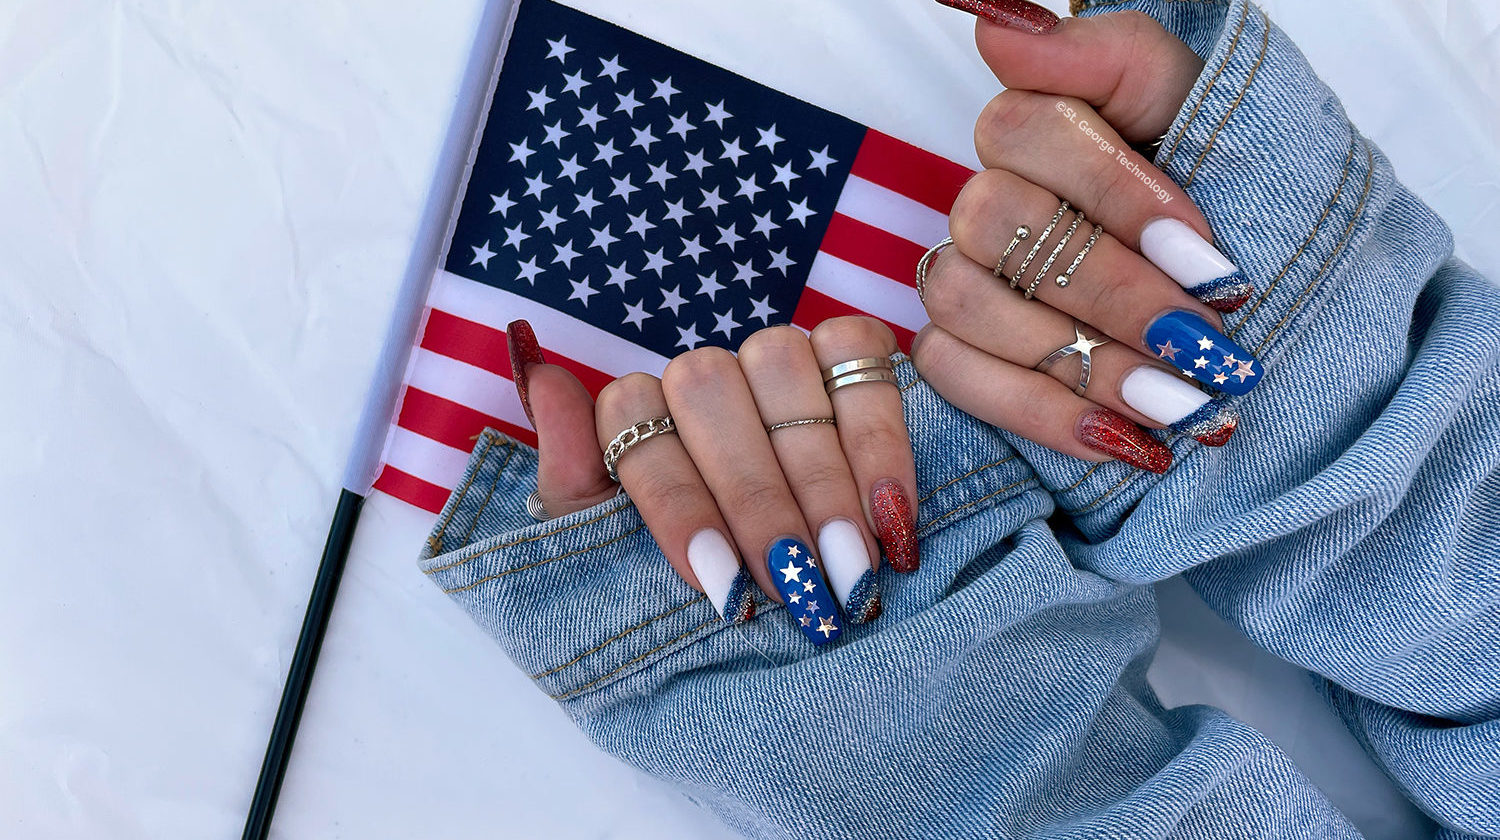 st george technology nexstgen july 4th red white and blue acrylic nails with american flag